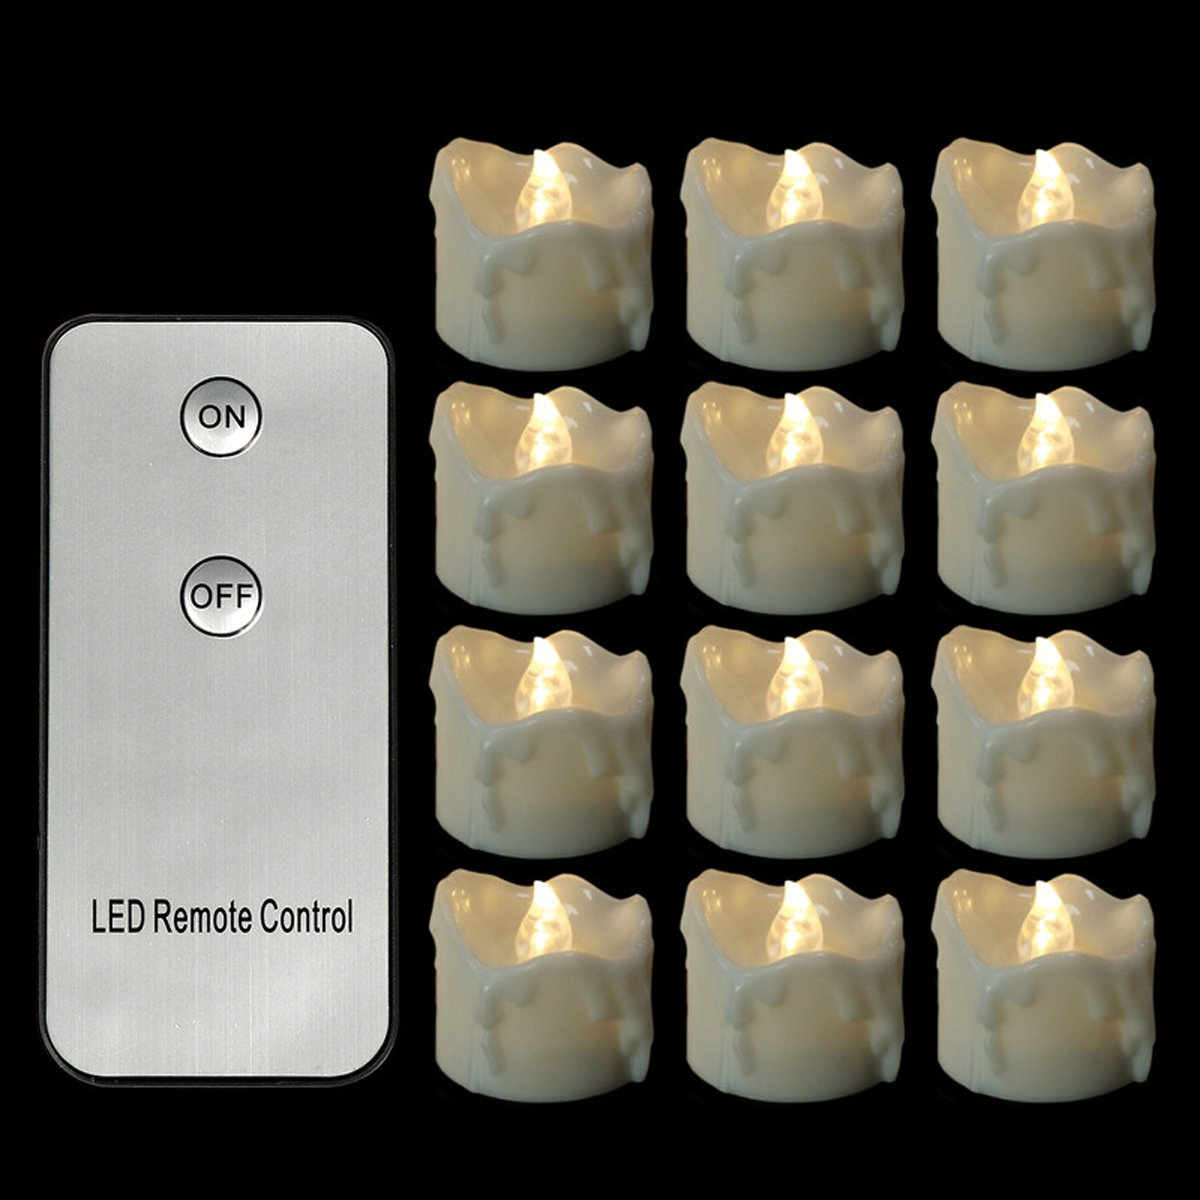 LifeGenius 48 PCS Flameless Candles Bulk Flickering Warm White Remote Control Wax Dripped Unscented Small Flashing Votive Battery Operated Tea Lights For Wedding Party Holiday Decoration